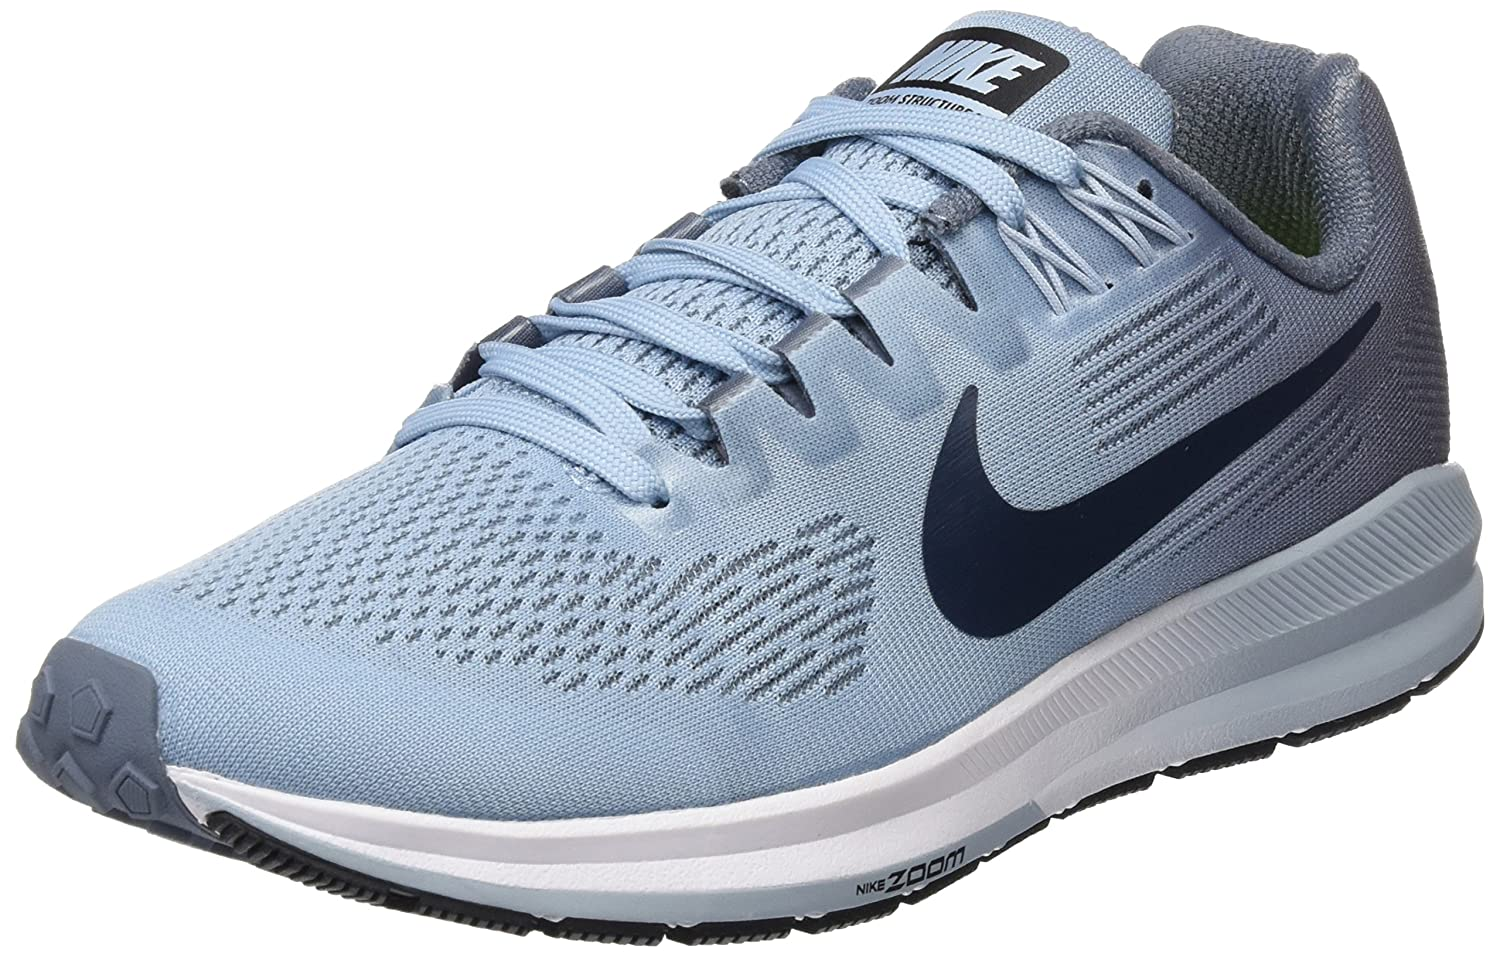 NIKE Women's Air Zoom Structure 21 Running Shoe B075HCN74K 9.5 B(M) US|Armory Blue/Armory Navy-cirrus Blue